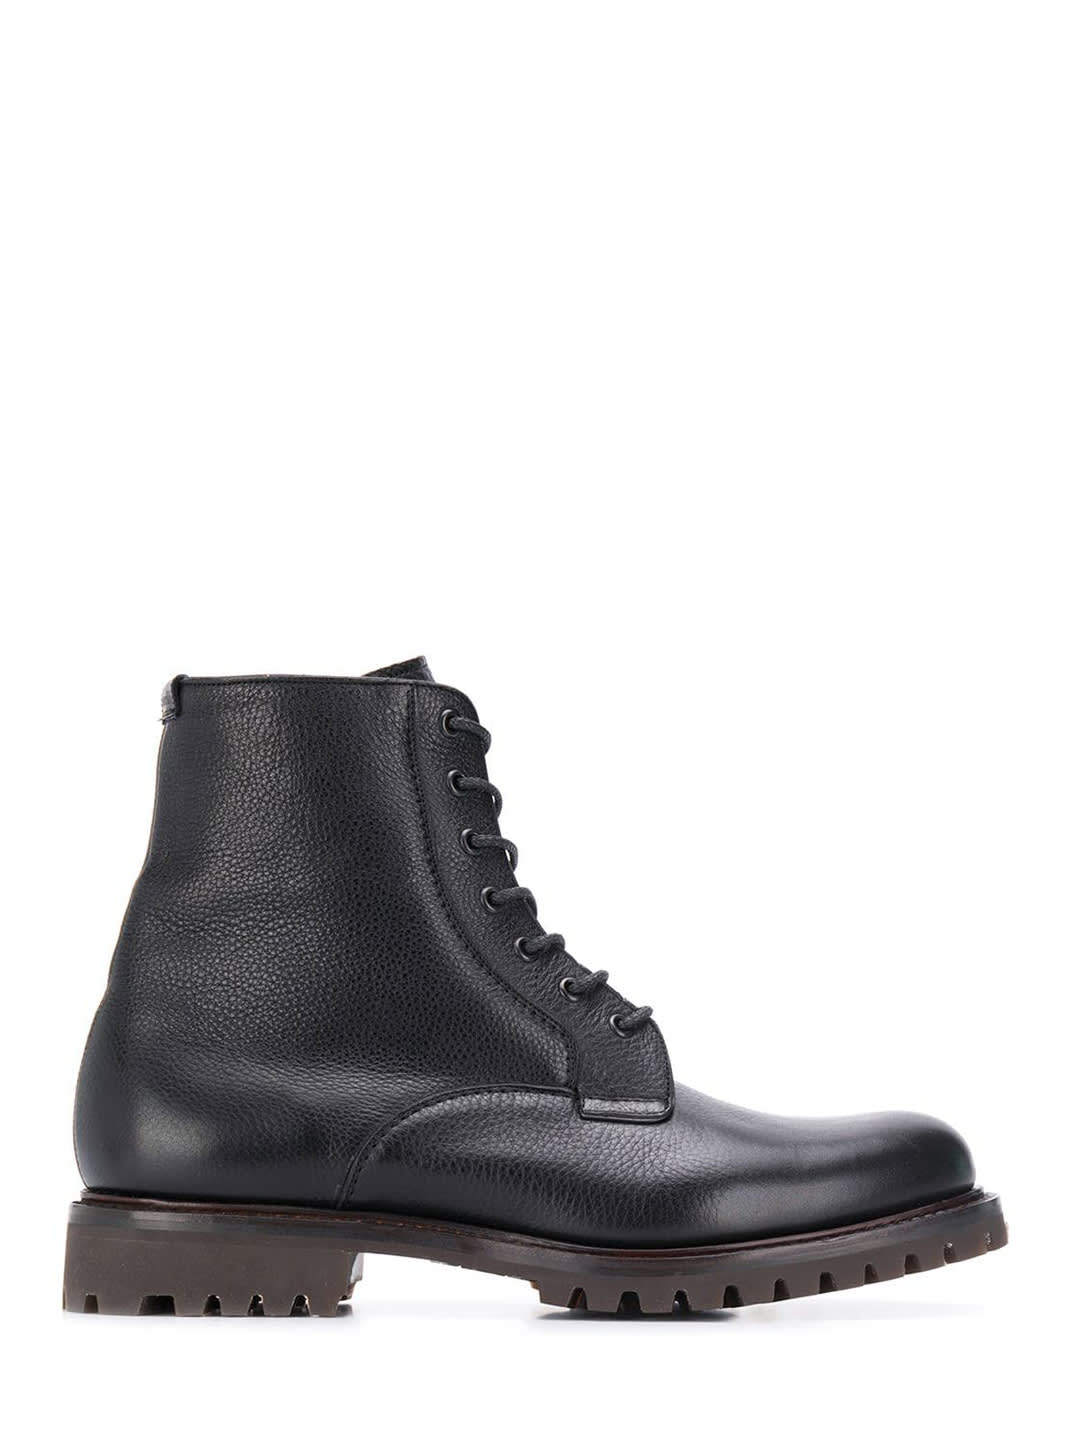 Churchs Ankle Boots Black Leather